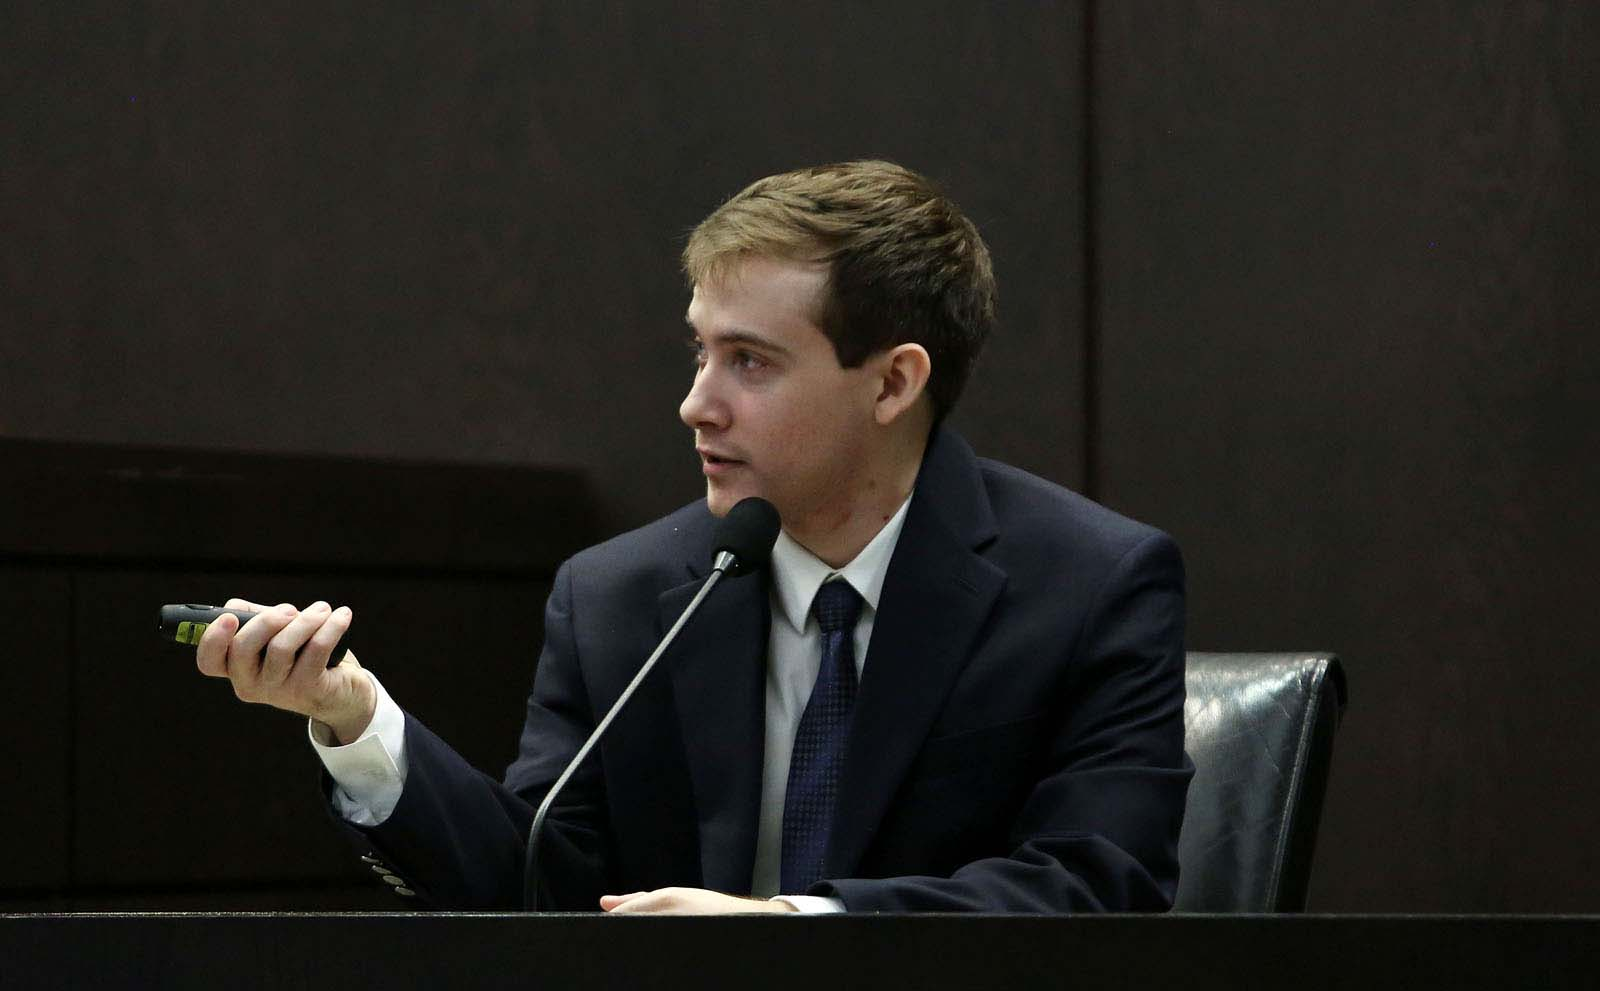 Pedro Bravo testifies on the witness stand during his murder trial in courtroom 1B of the Alachua County Criminal Justice Center Thursday, August 14, 2014.  Bravo is accused of killing University of Florida student Christian Aguilar.  (Doug Finger/The Gainesville Sun/Pool)